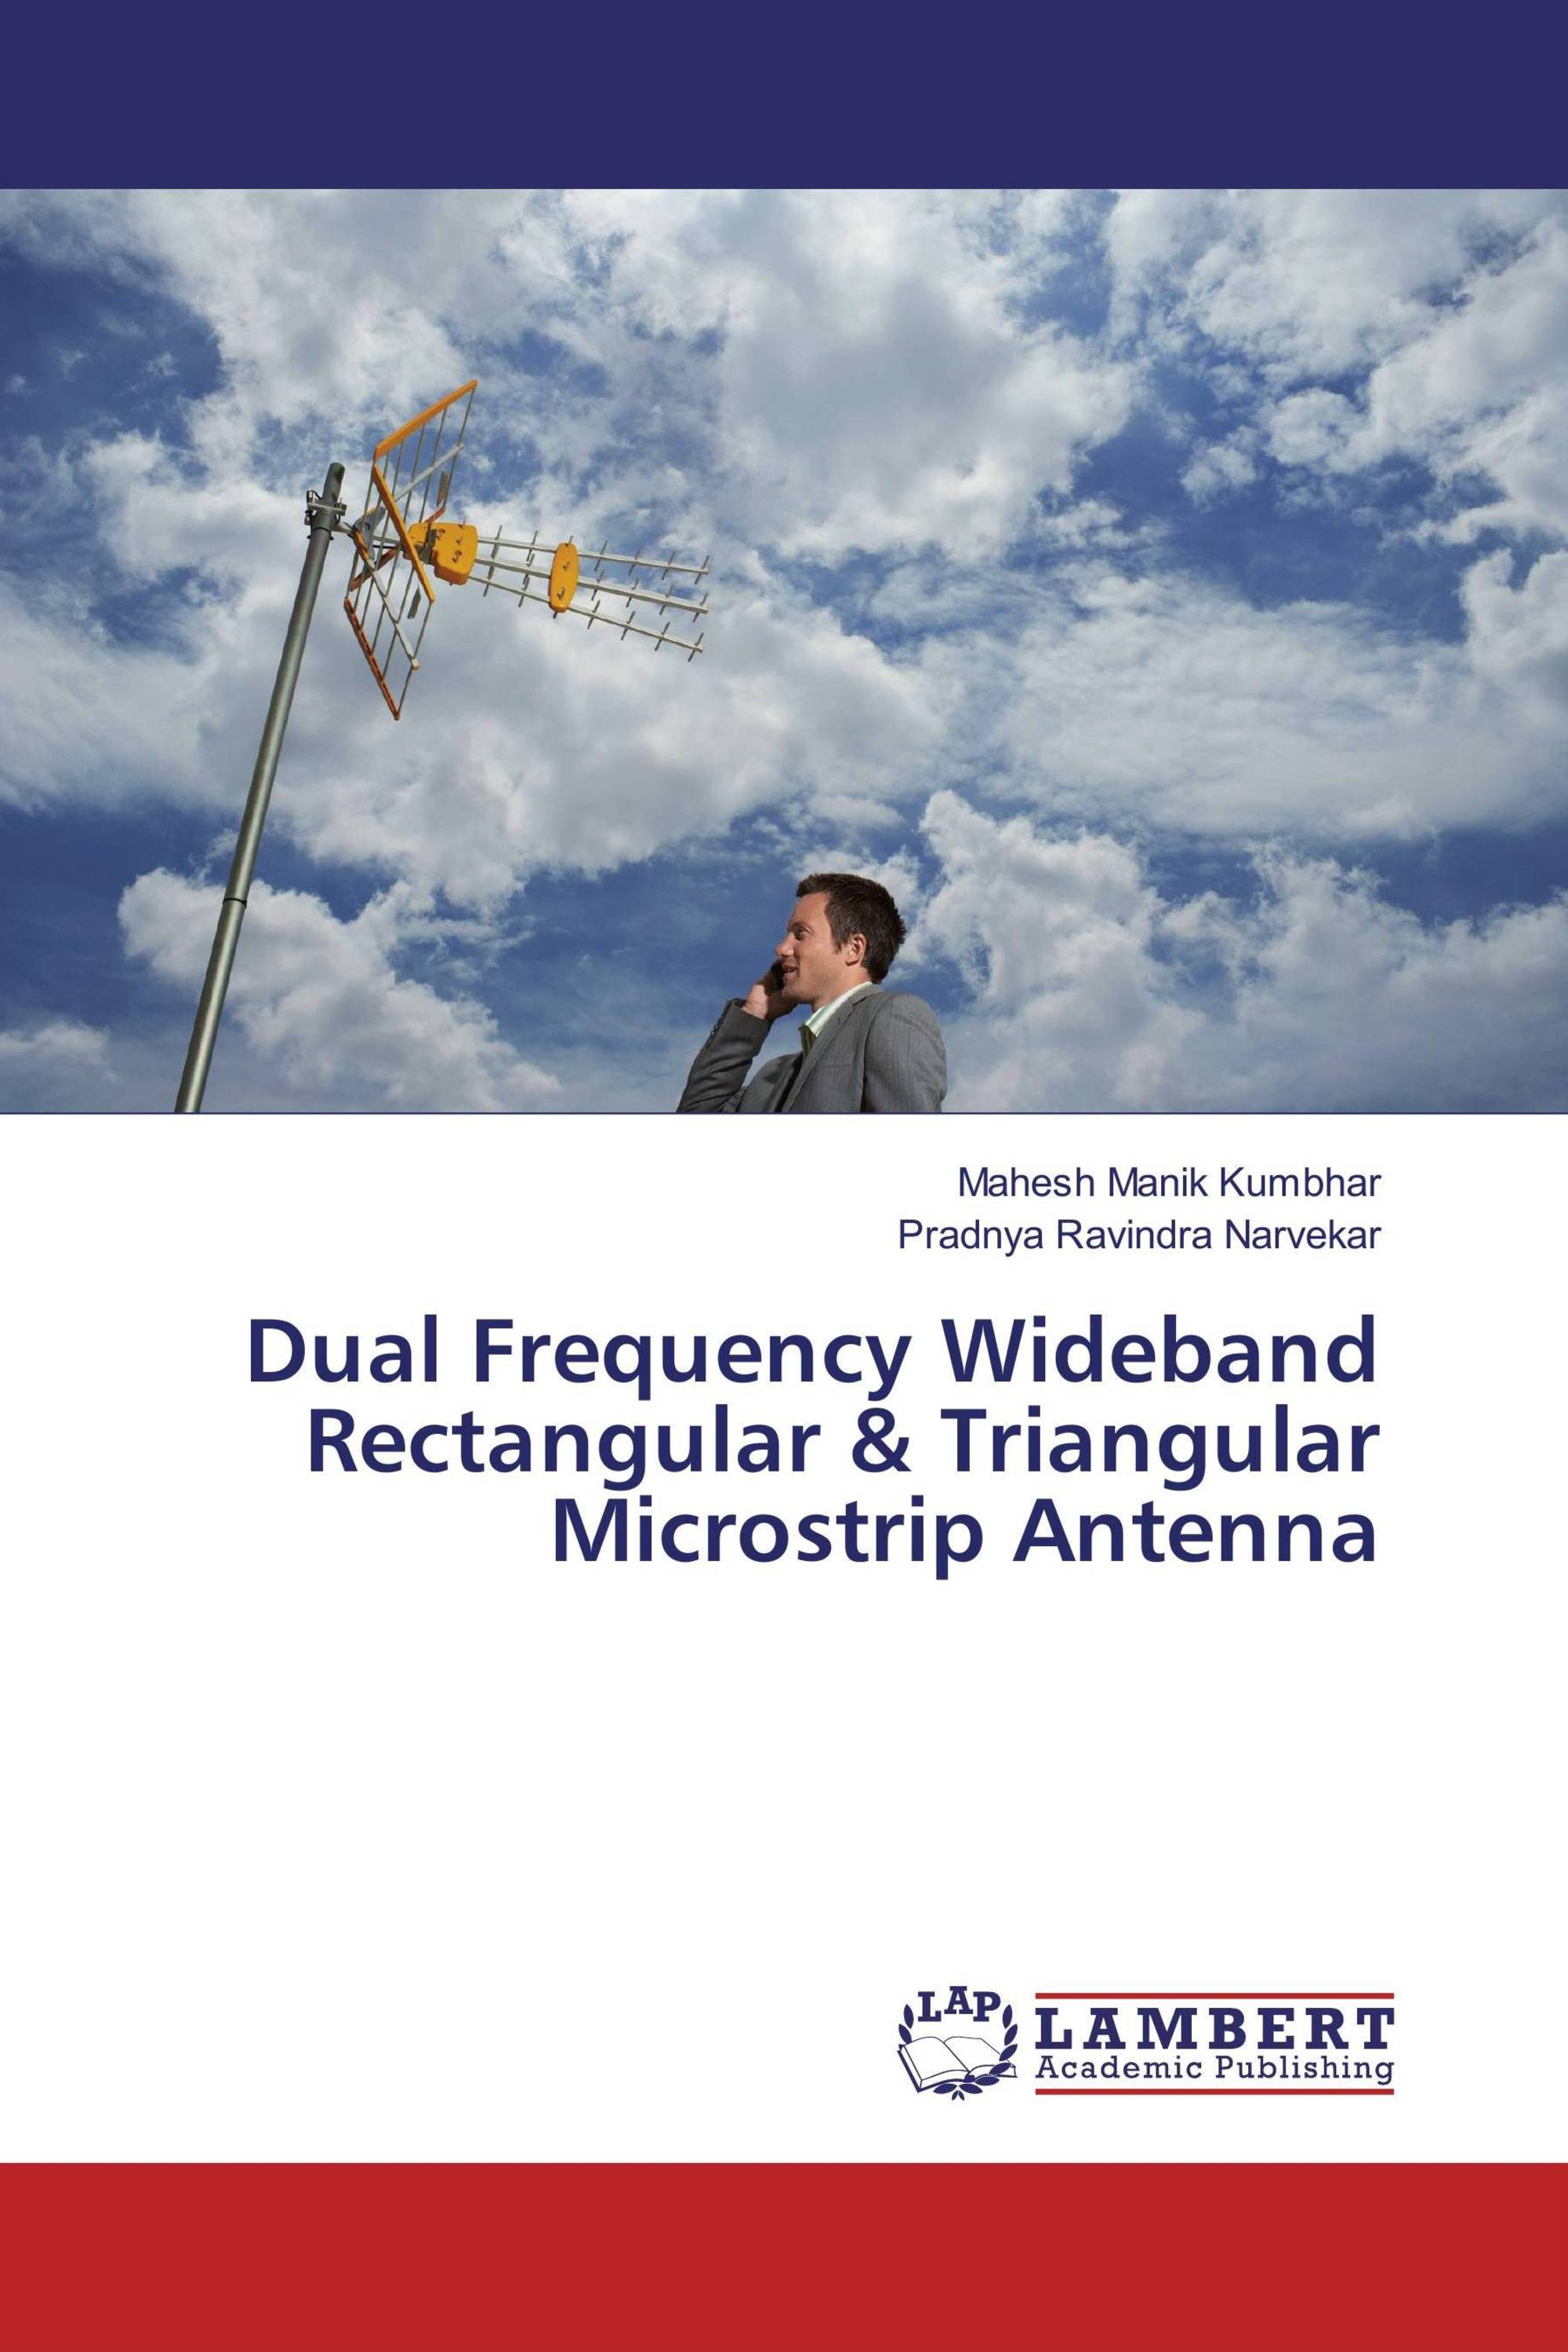 phd thesis on microstrip patch antenna Browsing phd theses by subject microstrip strip as a part of the micro strip patch antenna the first part of the thesis deals with the broadband.